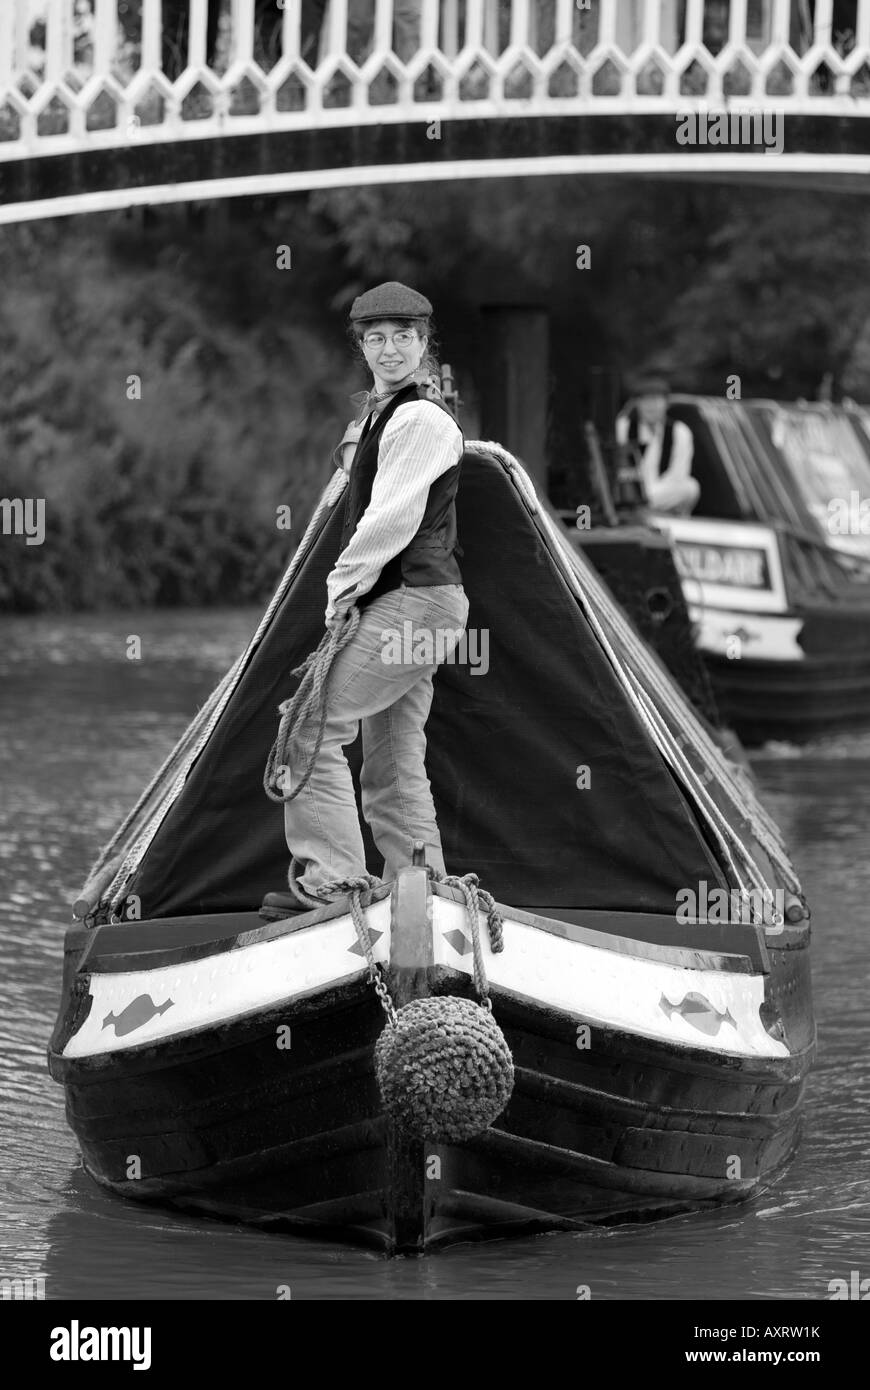 B&W taditional FMC narrowboat & butty on the Grand Union Canal Stock Photo